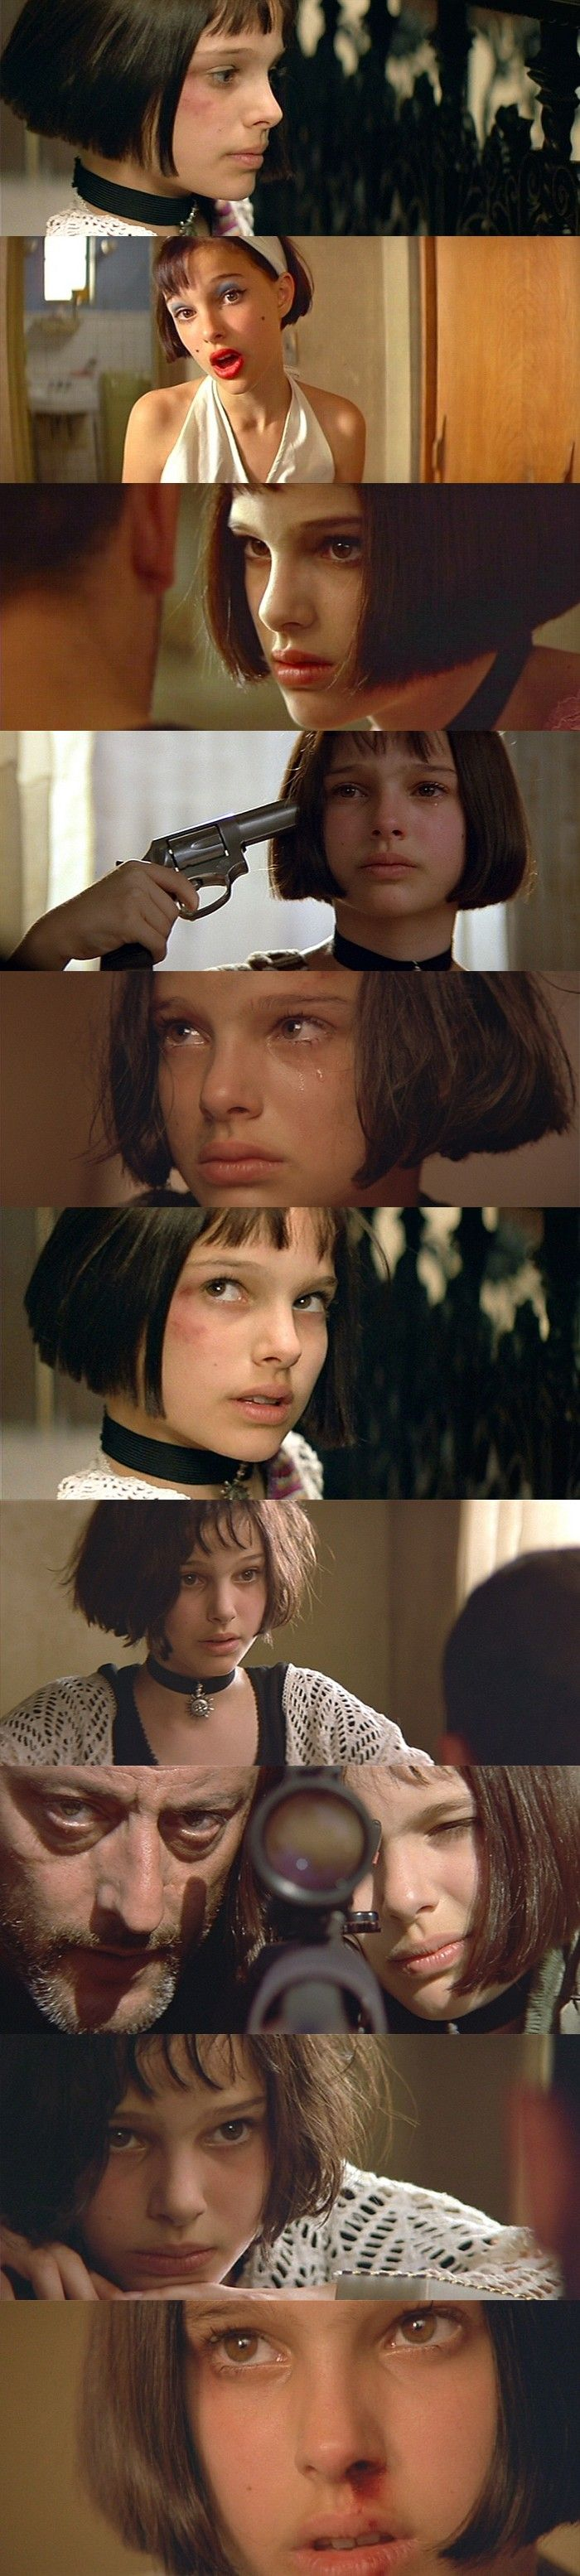 Leon Matilda  Still one of my fav Natalie Portman movies♡♡